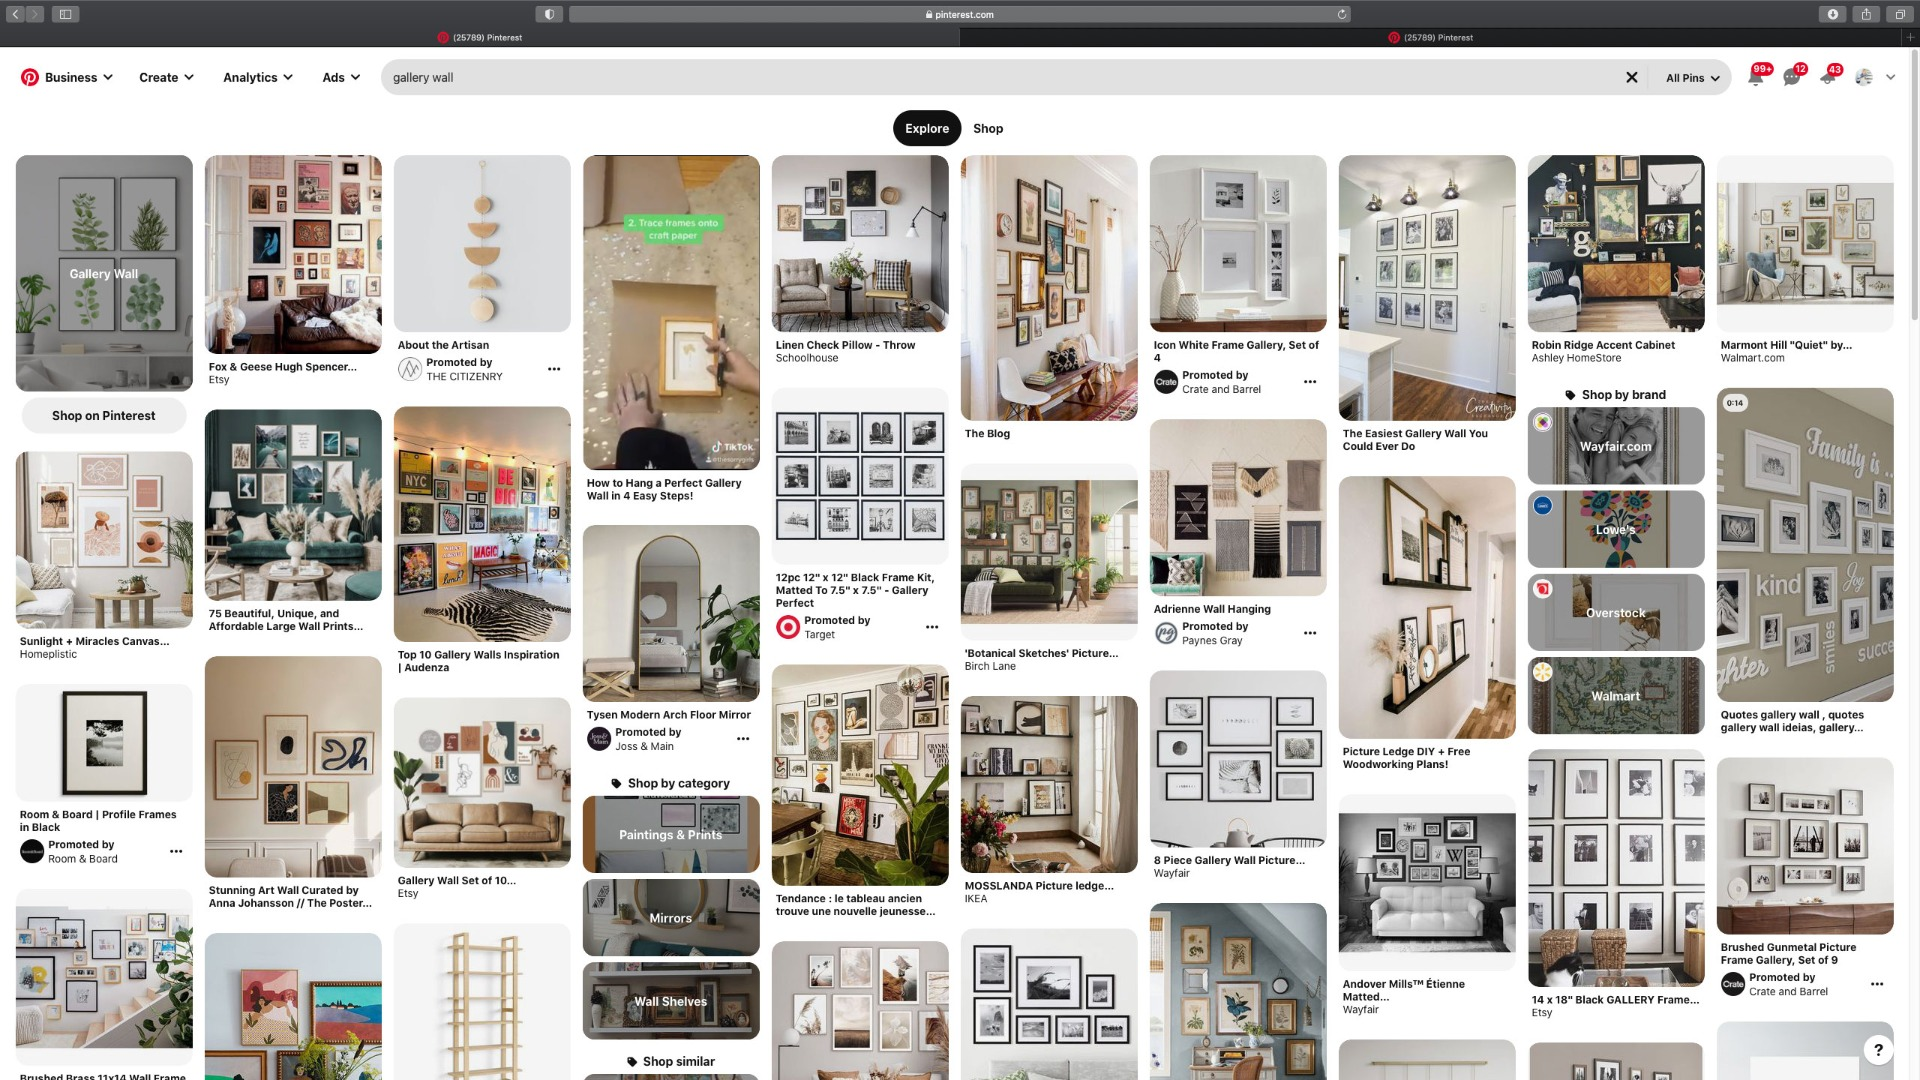 Pinterest Search for Gallery Wall Inspiration